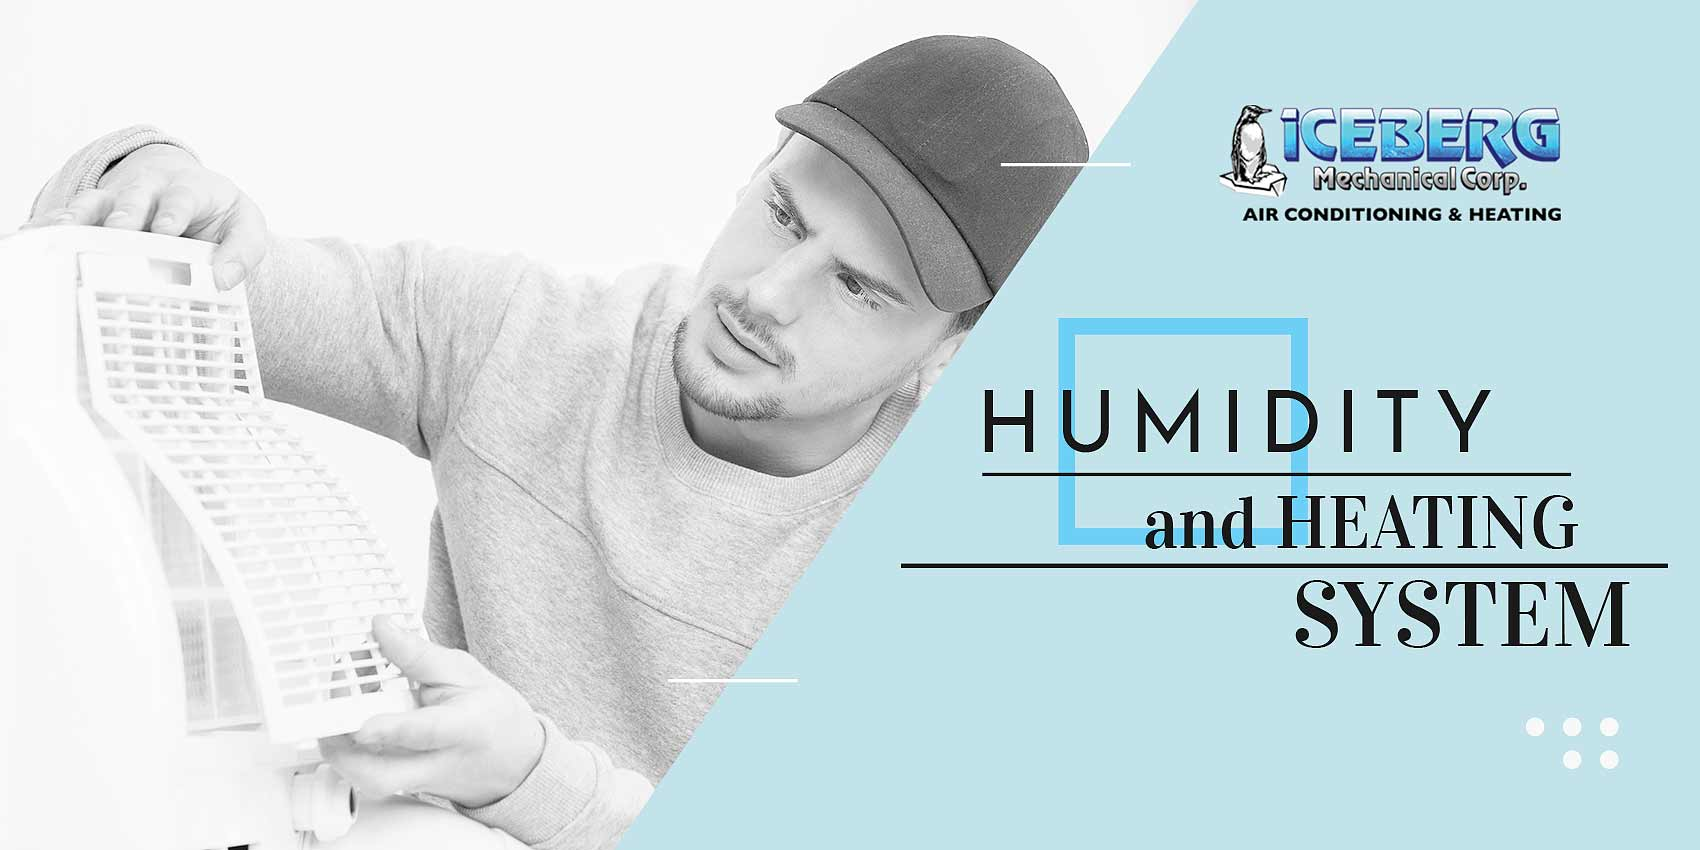 Humidity and Heating Systems